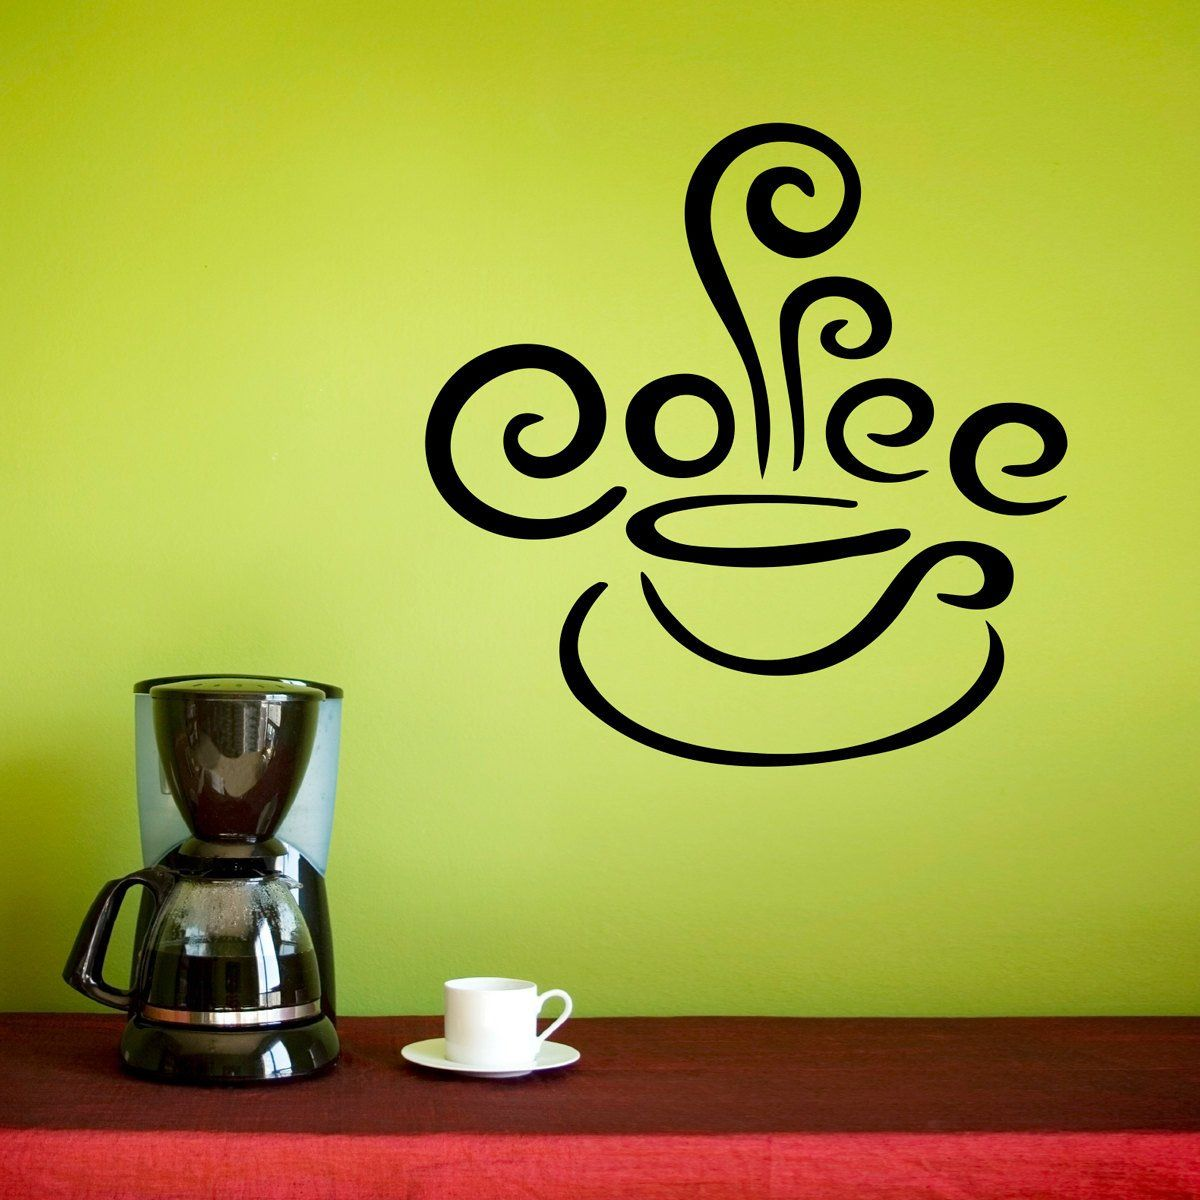 Coffee Cup with Steam Wall Decal | Svg | Pinterest | Coffee cup ...